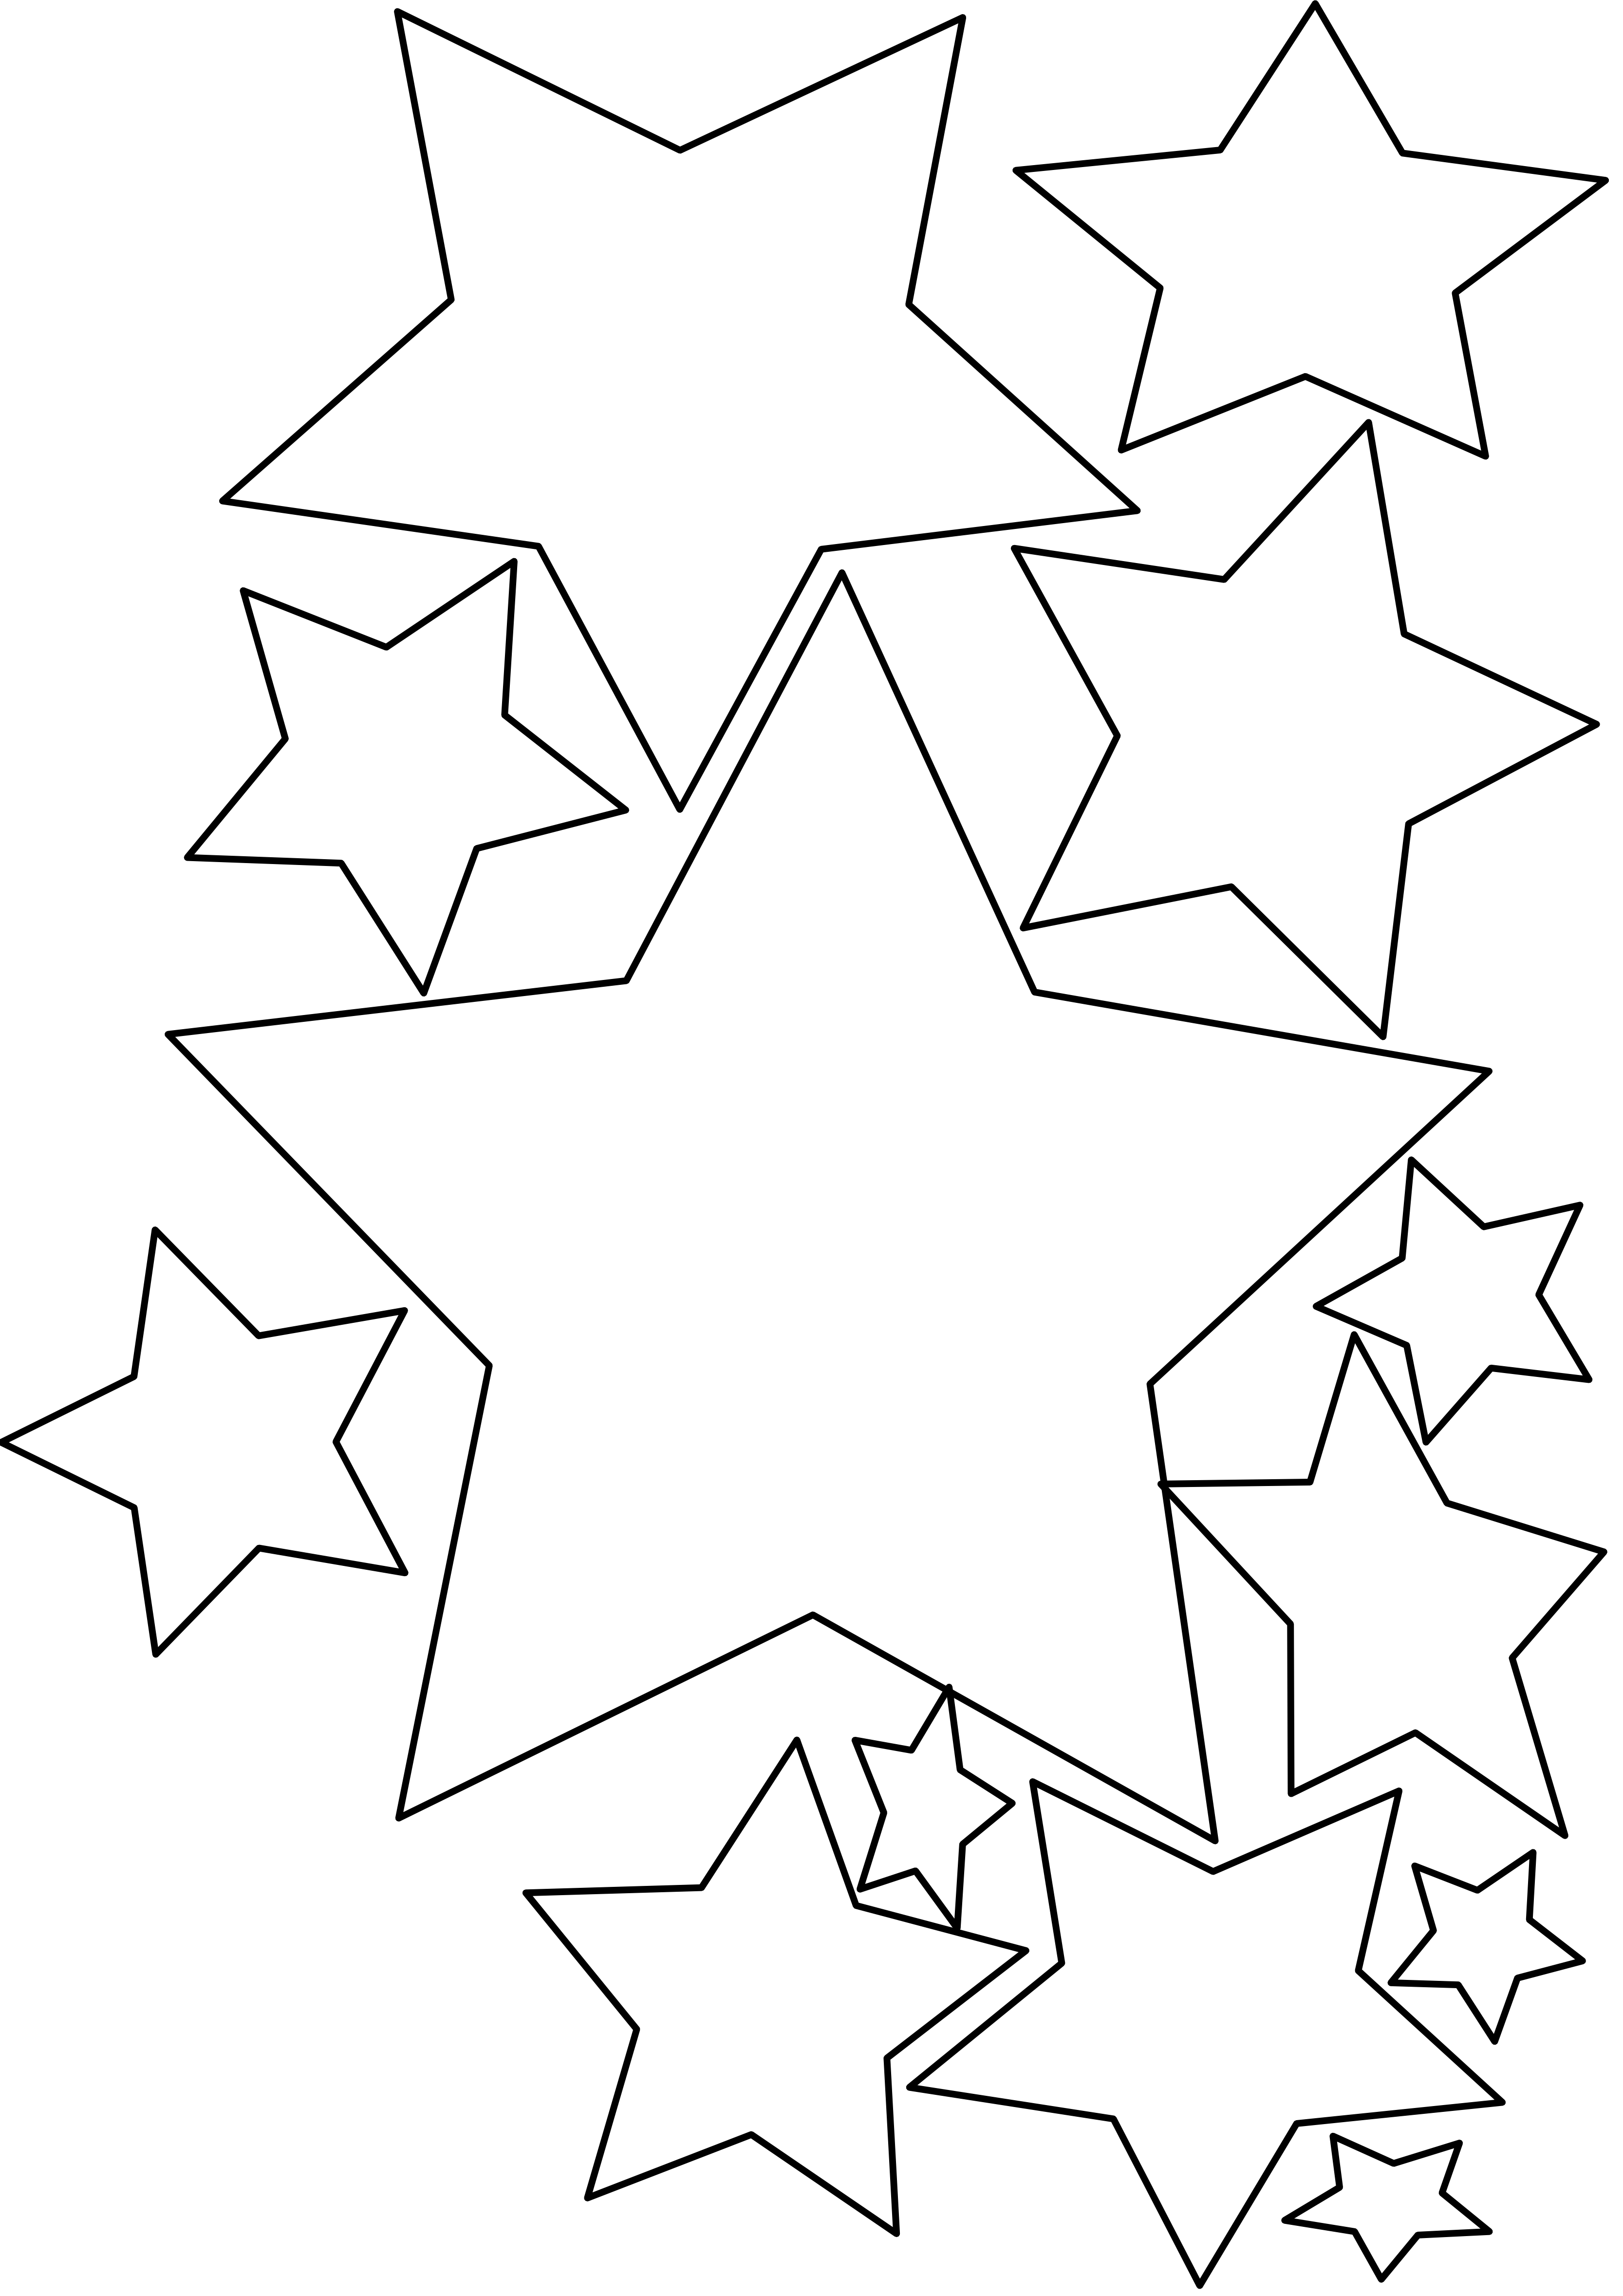 Star Black And White Image Of Black Star Clipart Stars And